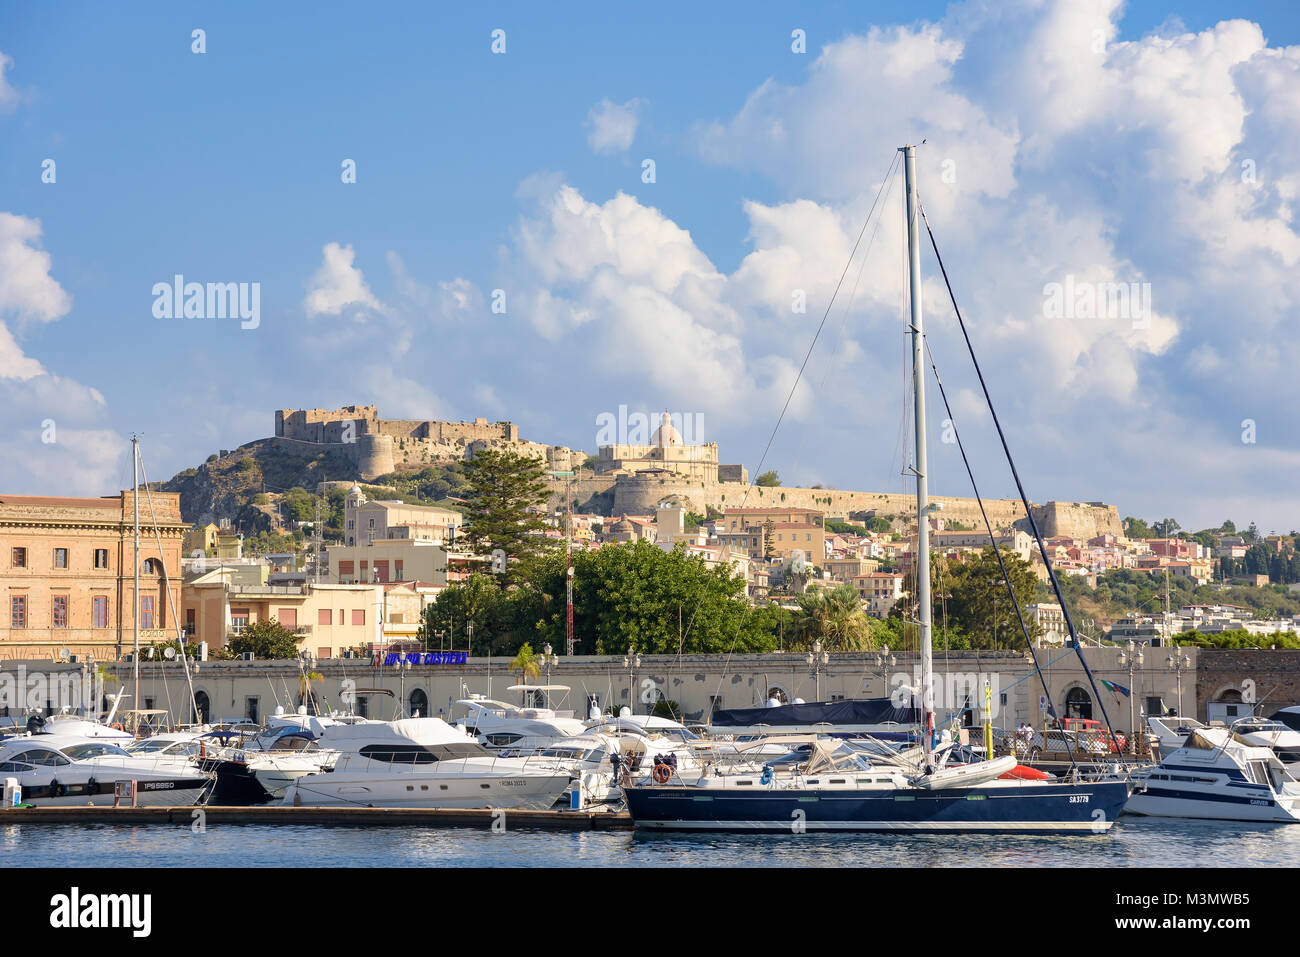 Milazzo, Italy - August 22, 2017: View of the port in Sicilian town with Milazzo Castle in the background Stock Photo